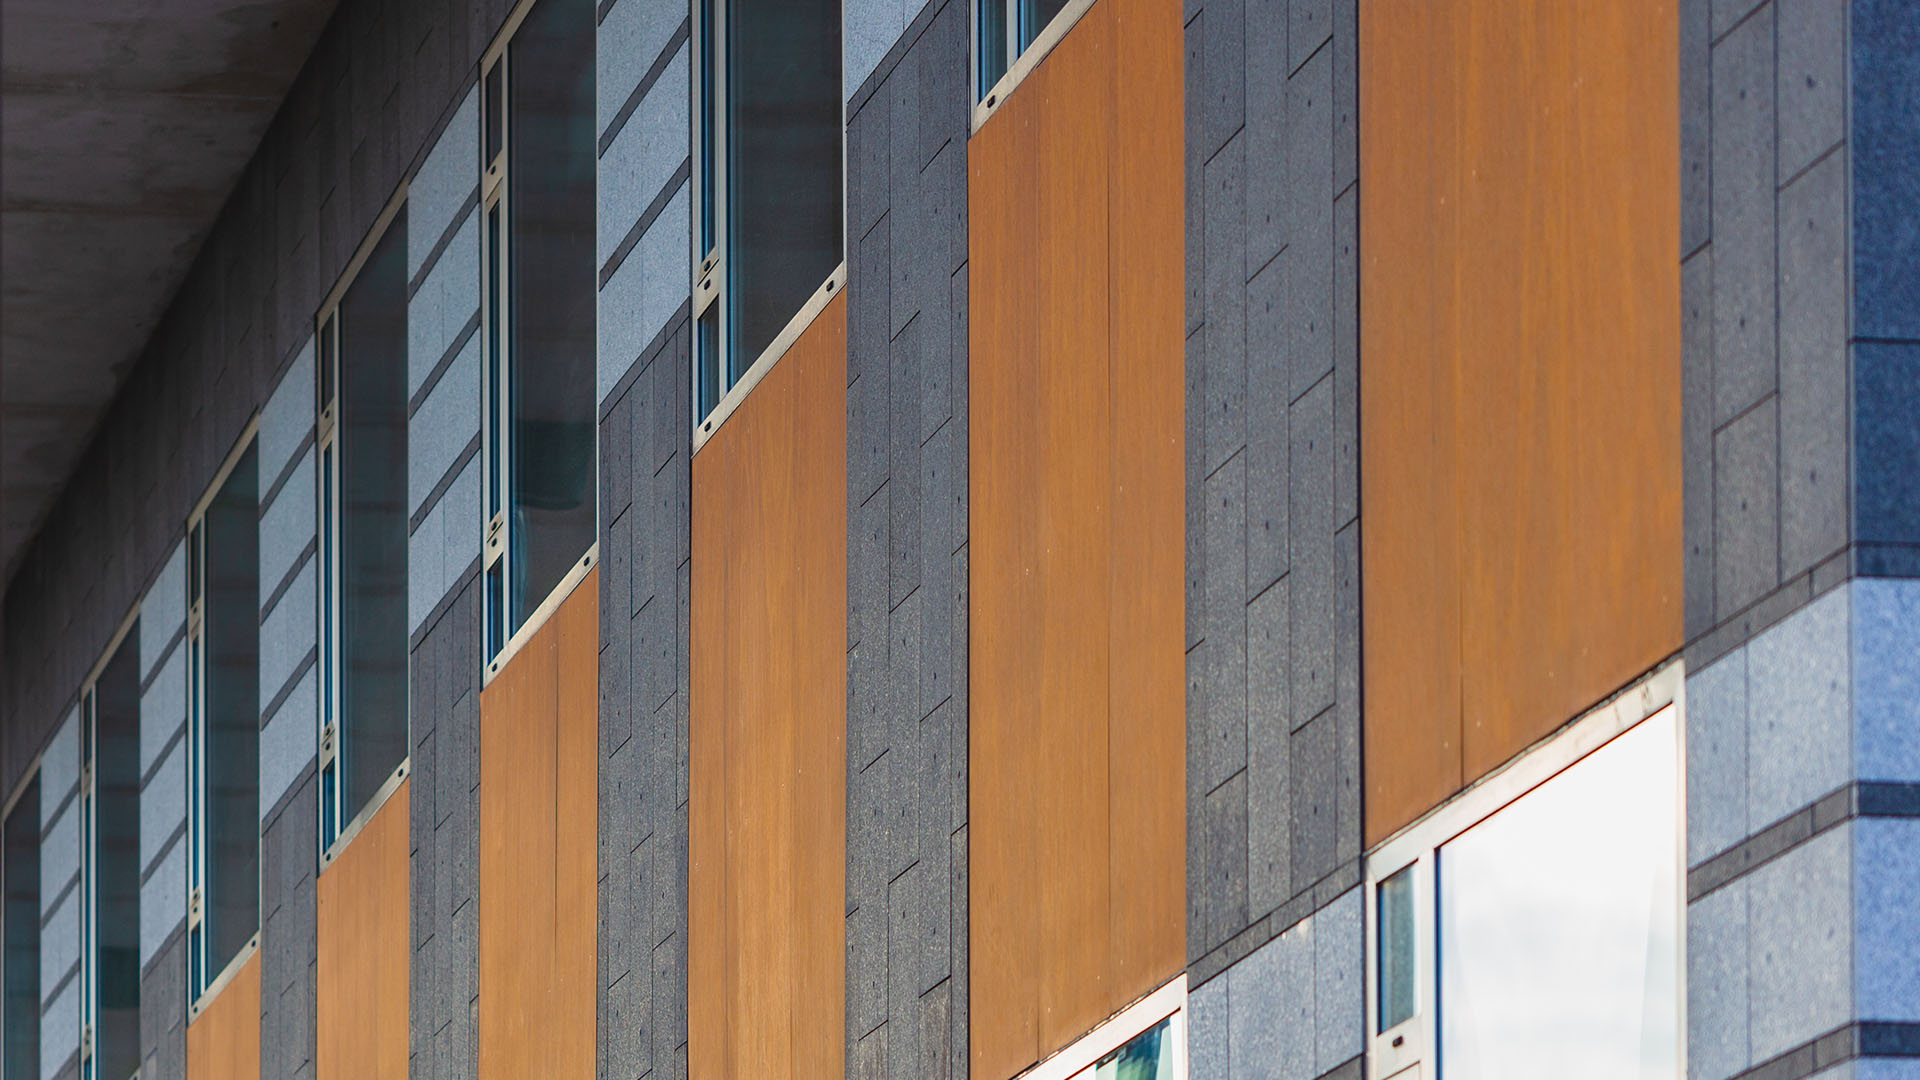 abstract view of office building exterior